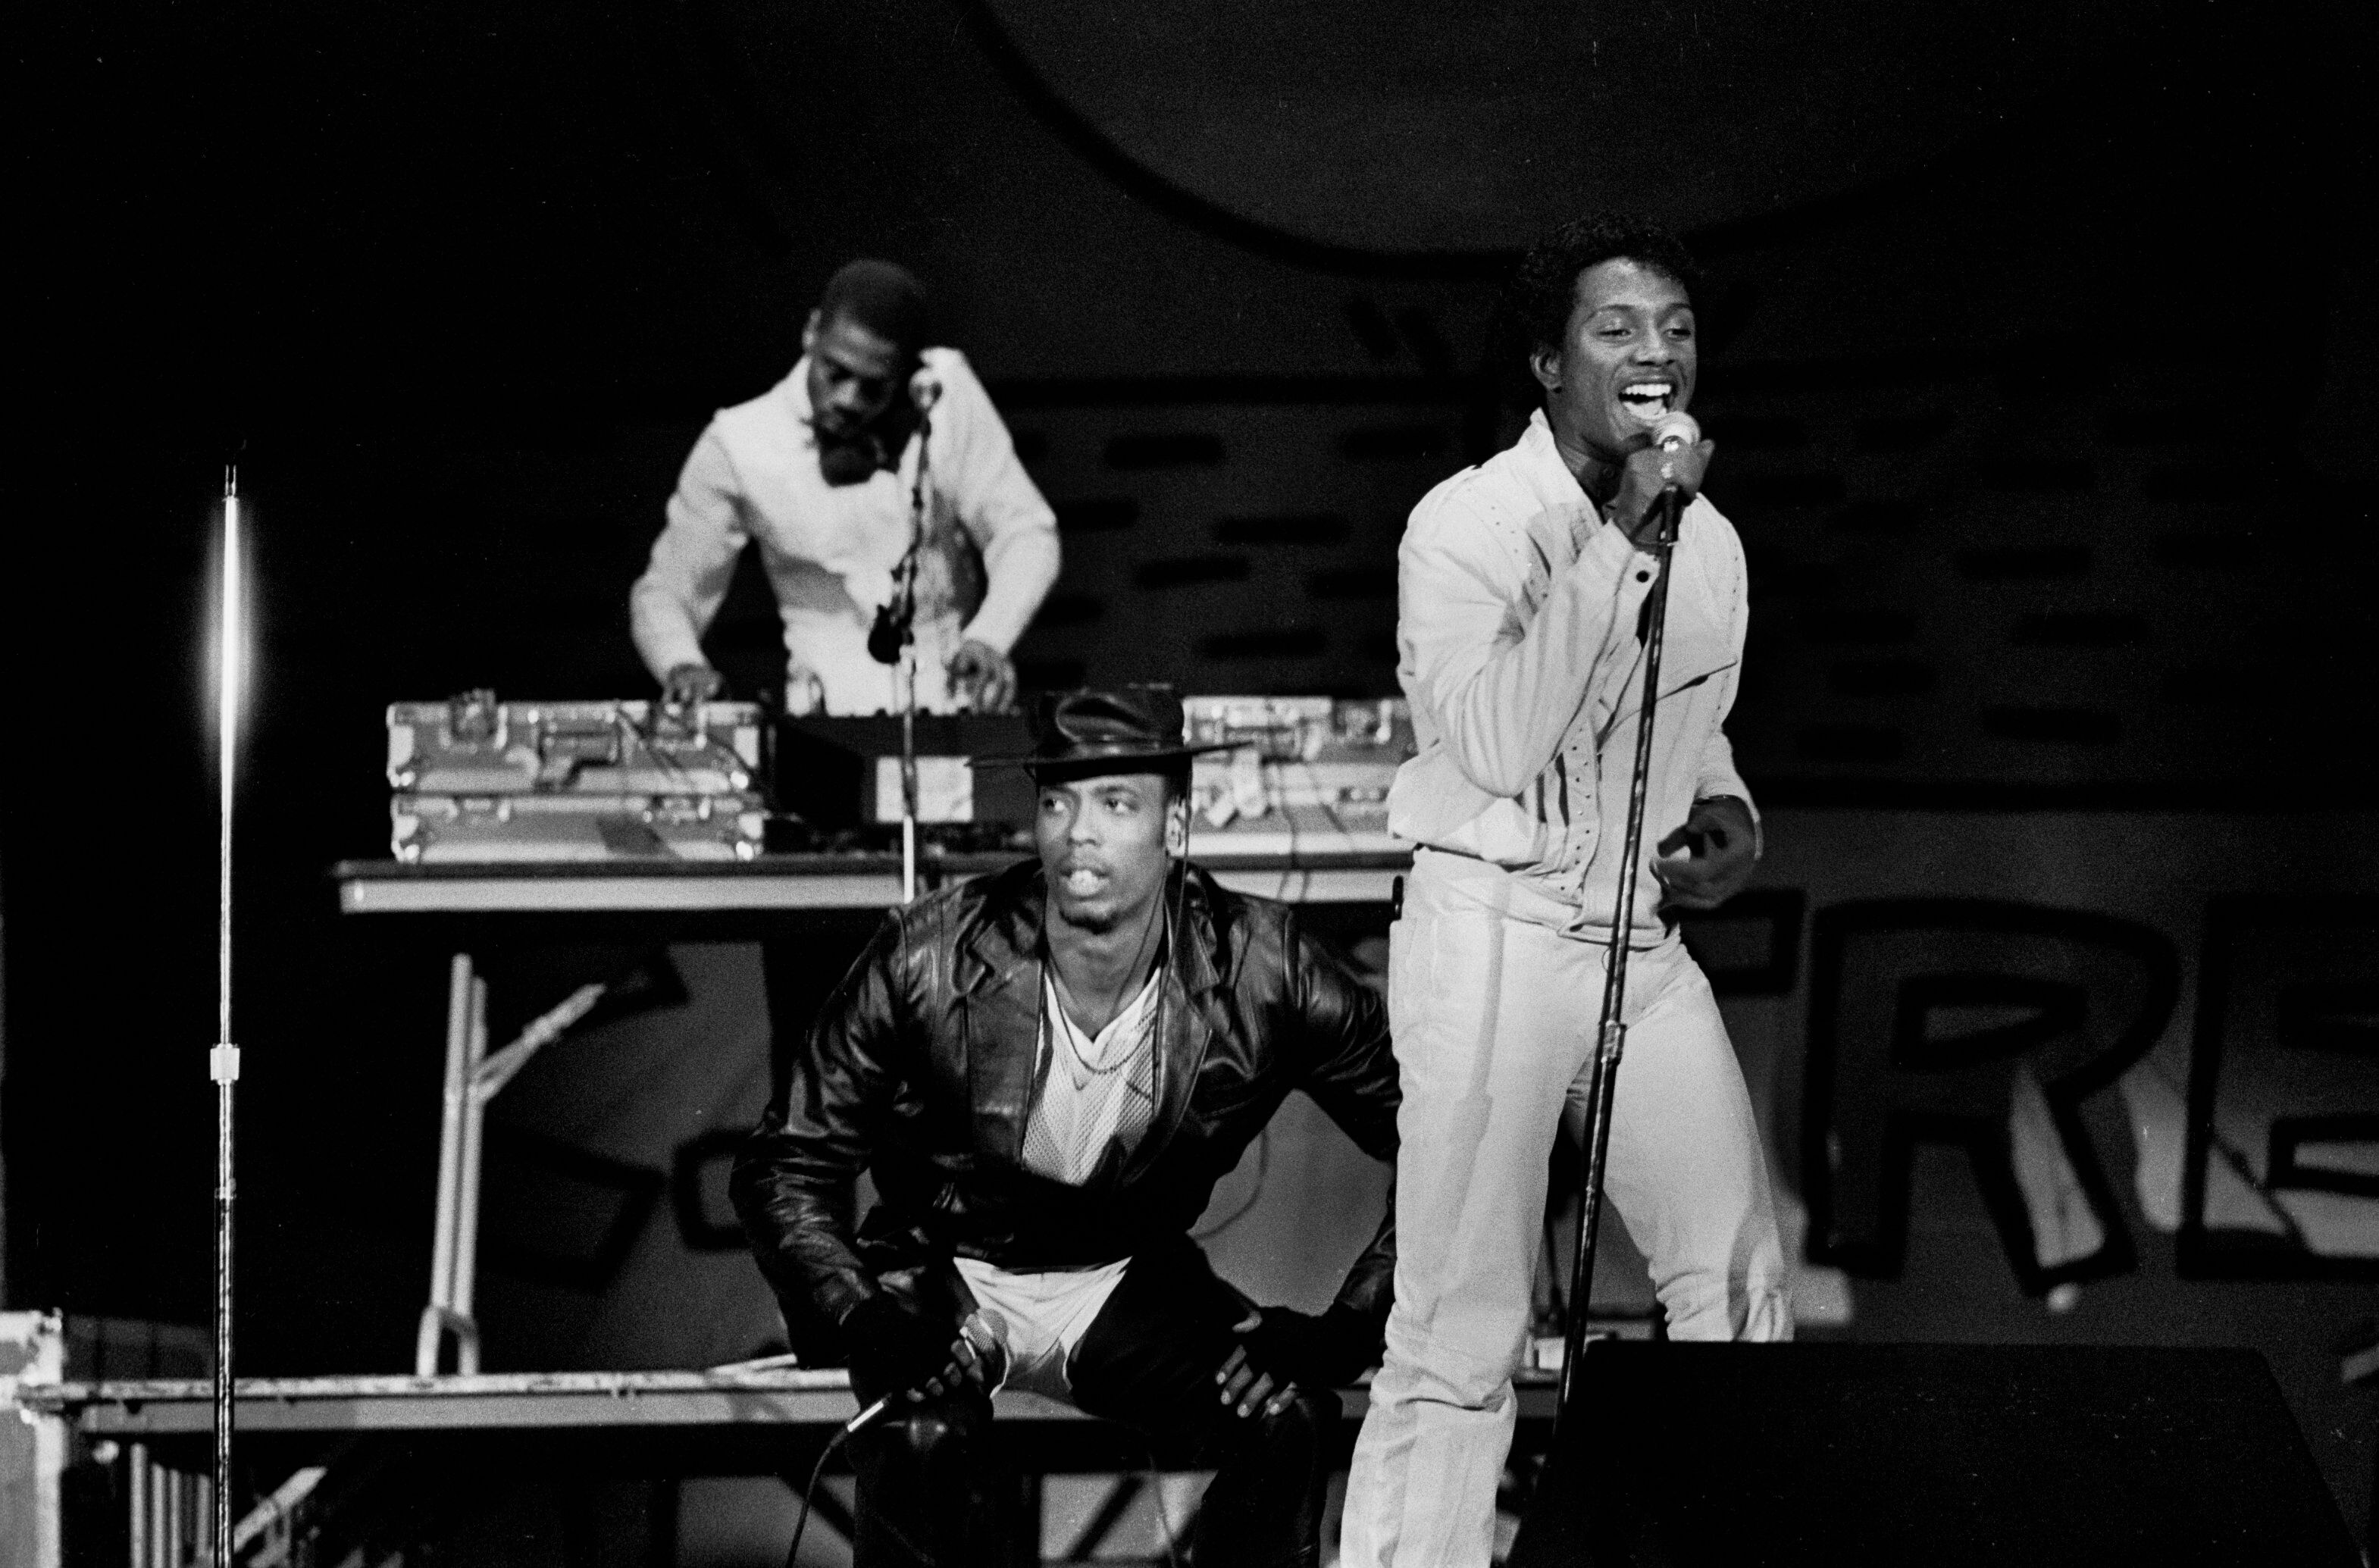 """John """"Ecstacy"""" Fletcher, center in the hat, performs with Whodini during a 1984 concert in Chicago."""